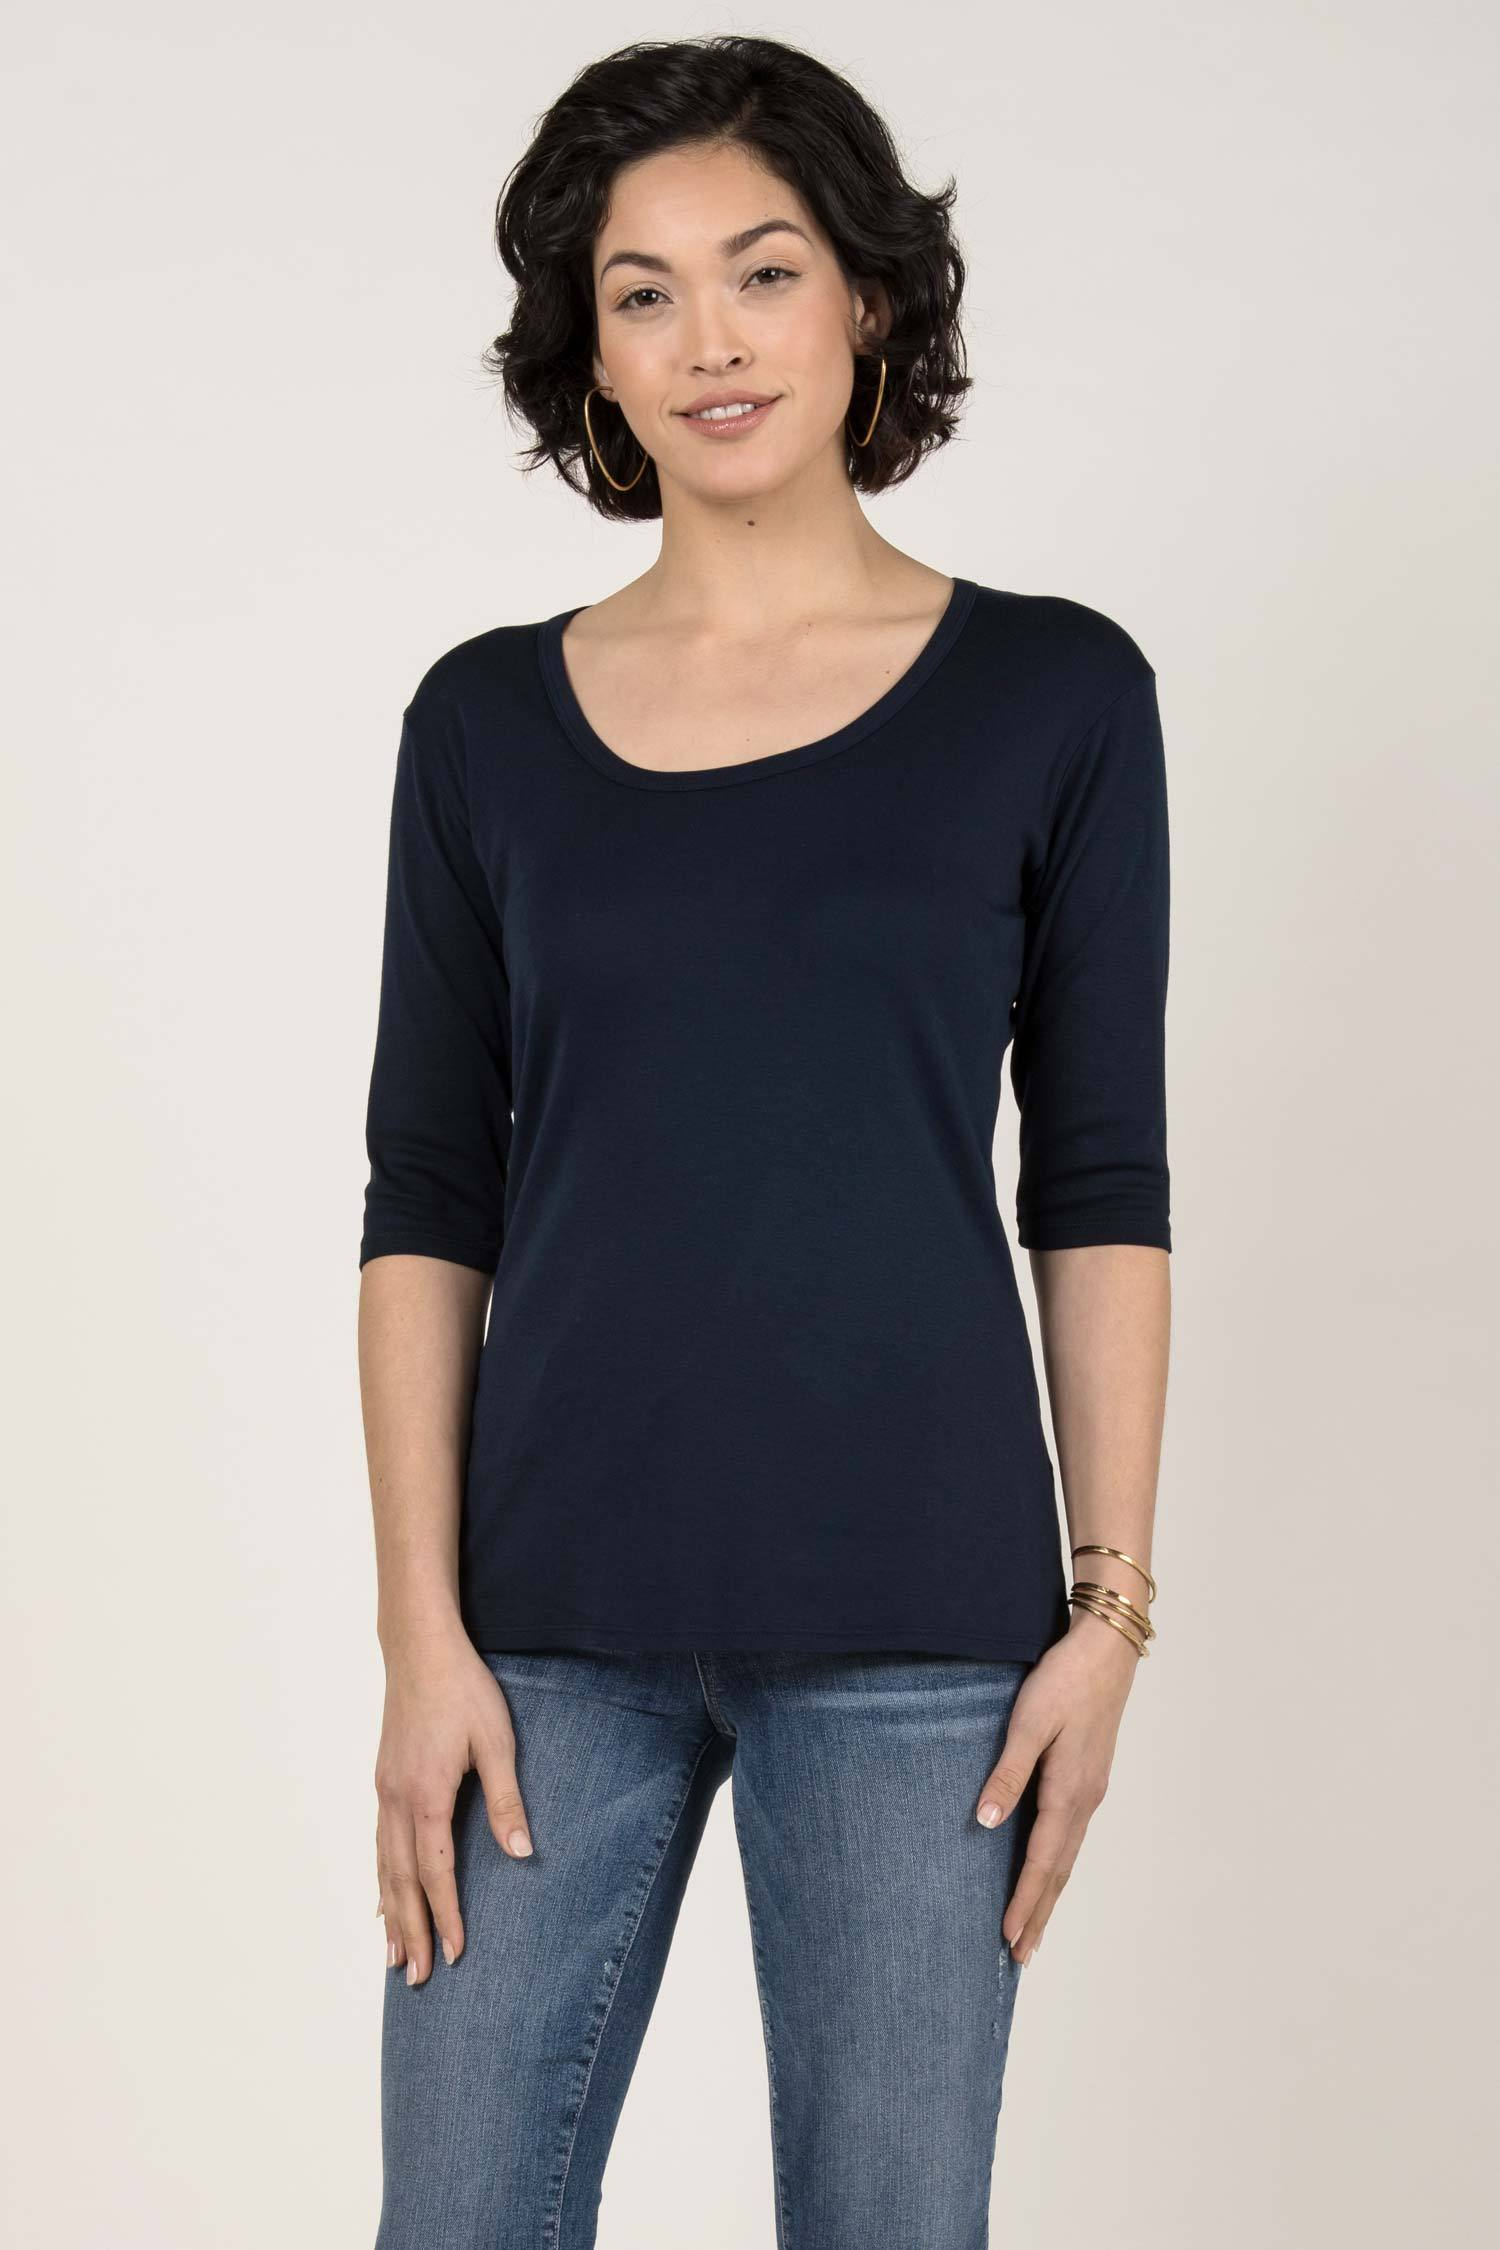 Womens Organic Cotton Scoop Tee | Navy Blue